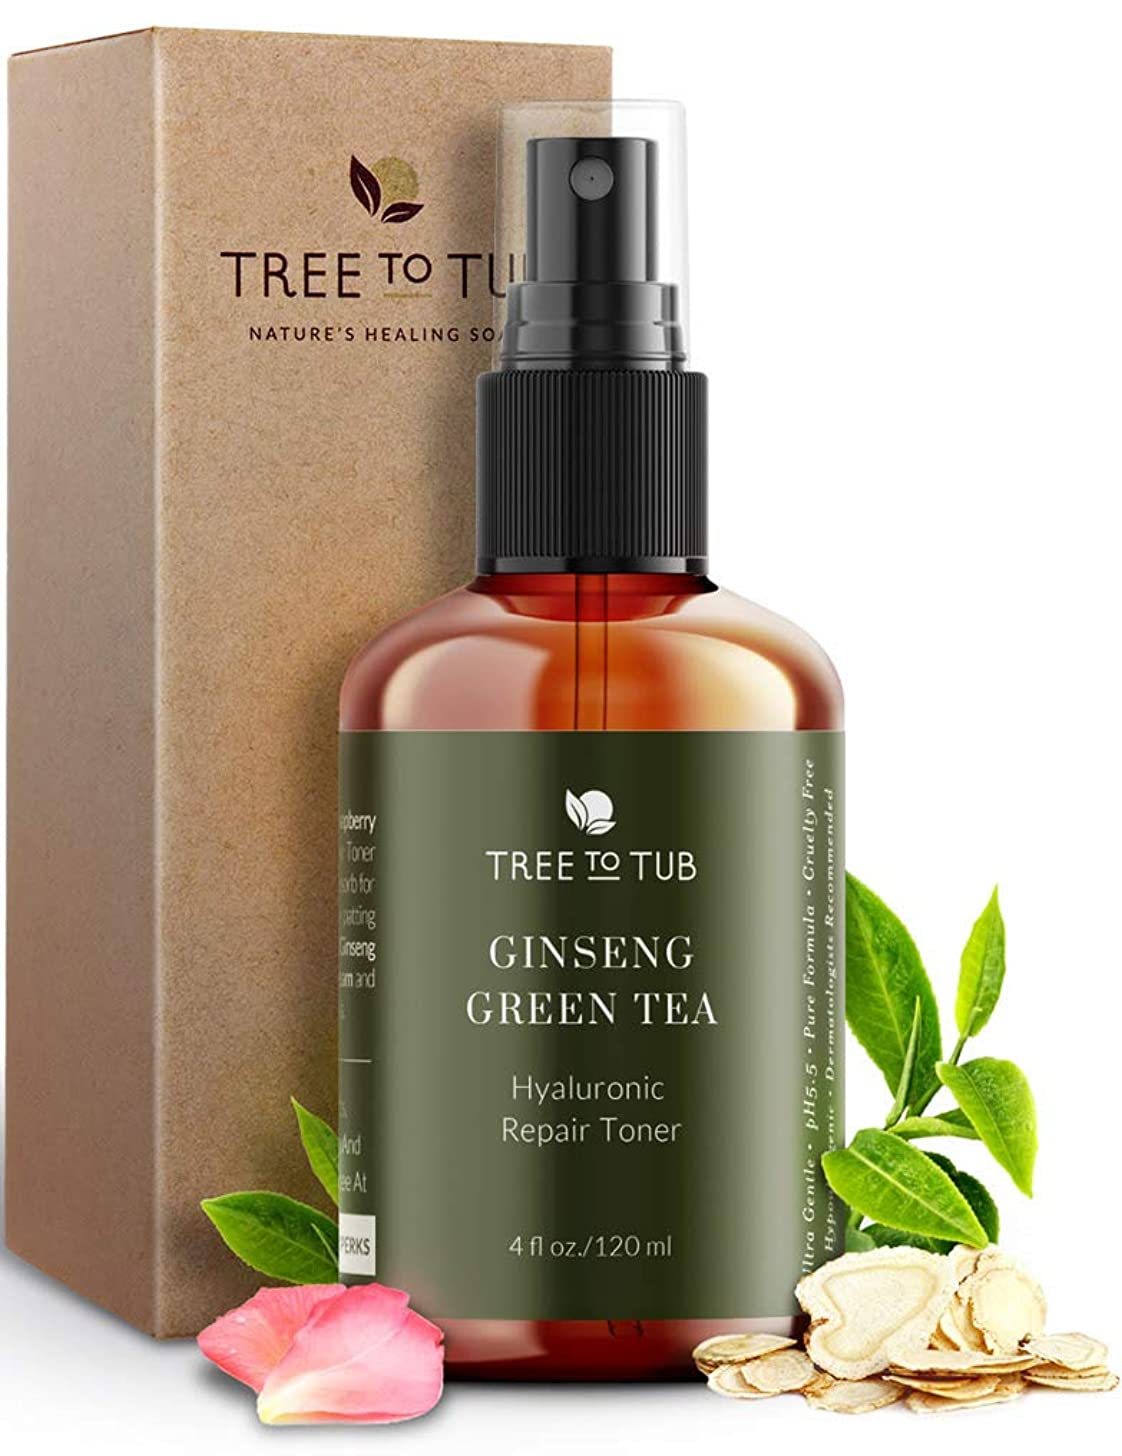 Deep Calming Toner Spray for Sensitive Skin by Tree To Tub | pH 5.5 Balanced & Hypoallergenic | Face Priming & Hydrating with Hyaluronic Acid, Organic Witch Hazel, Rose Water, Ginseng, Green Tea, 4 oz